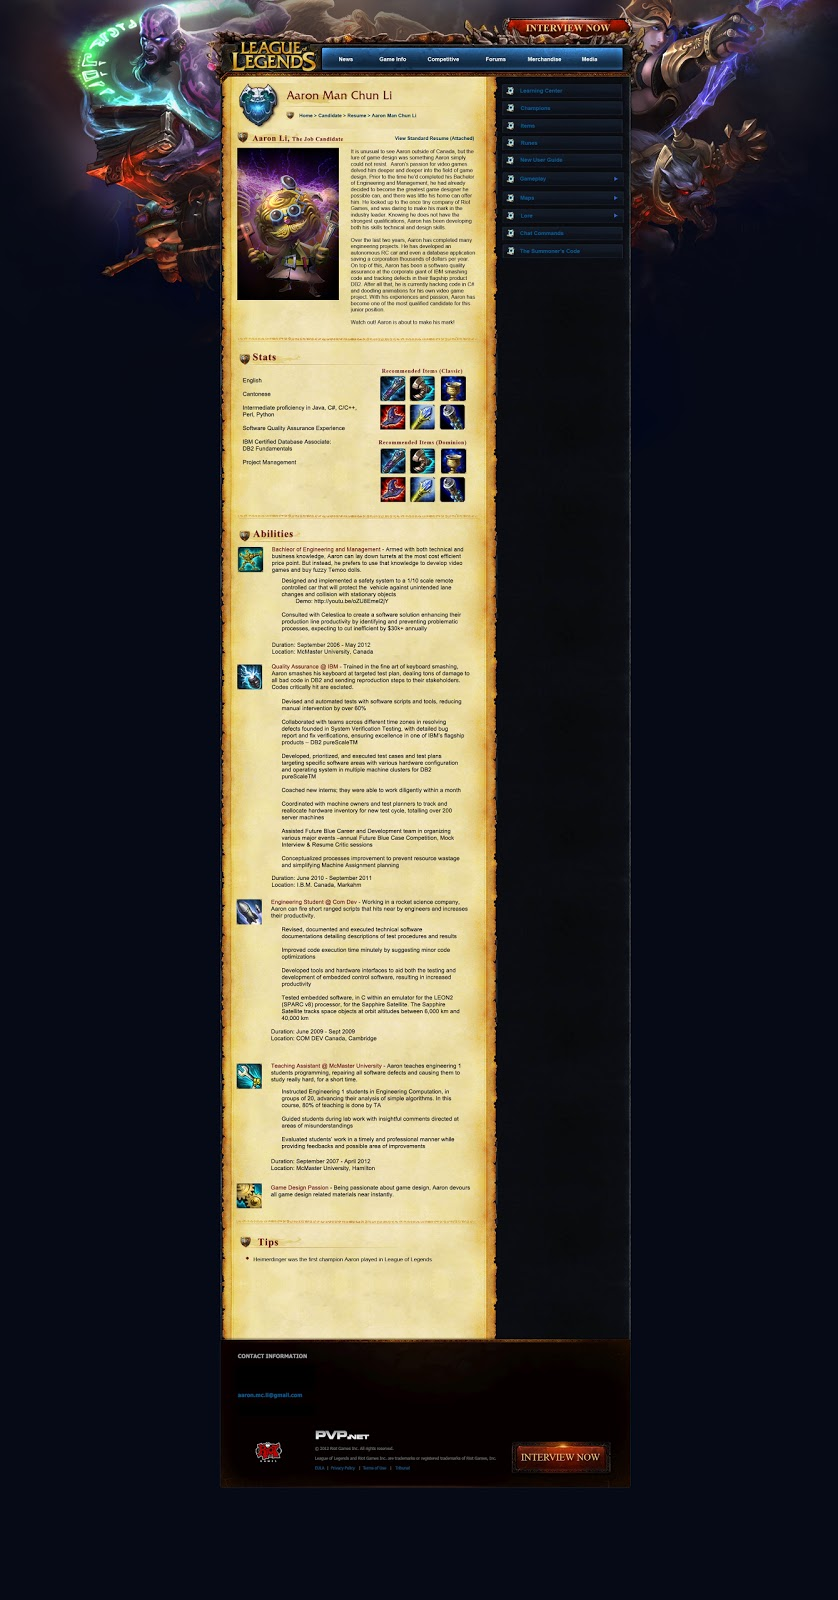 resume samples resume now free resume templates for a welder